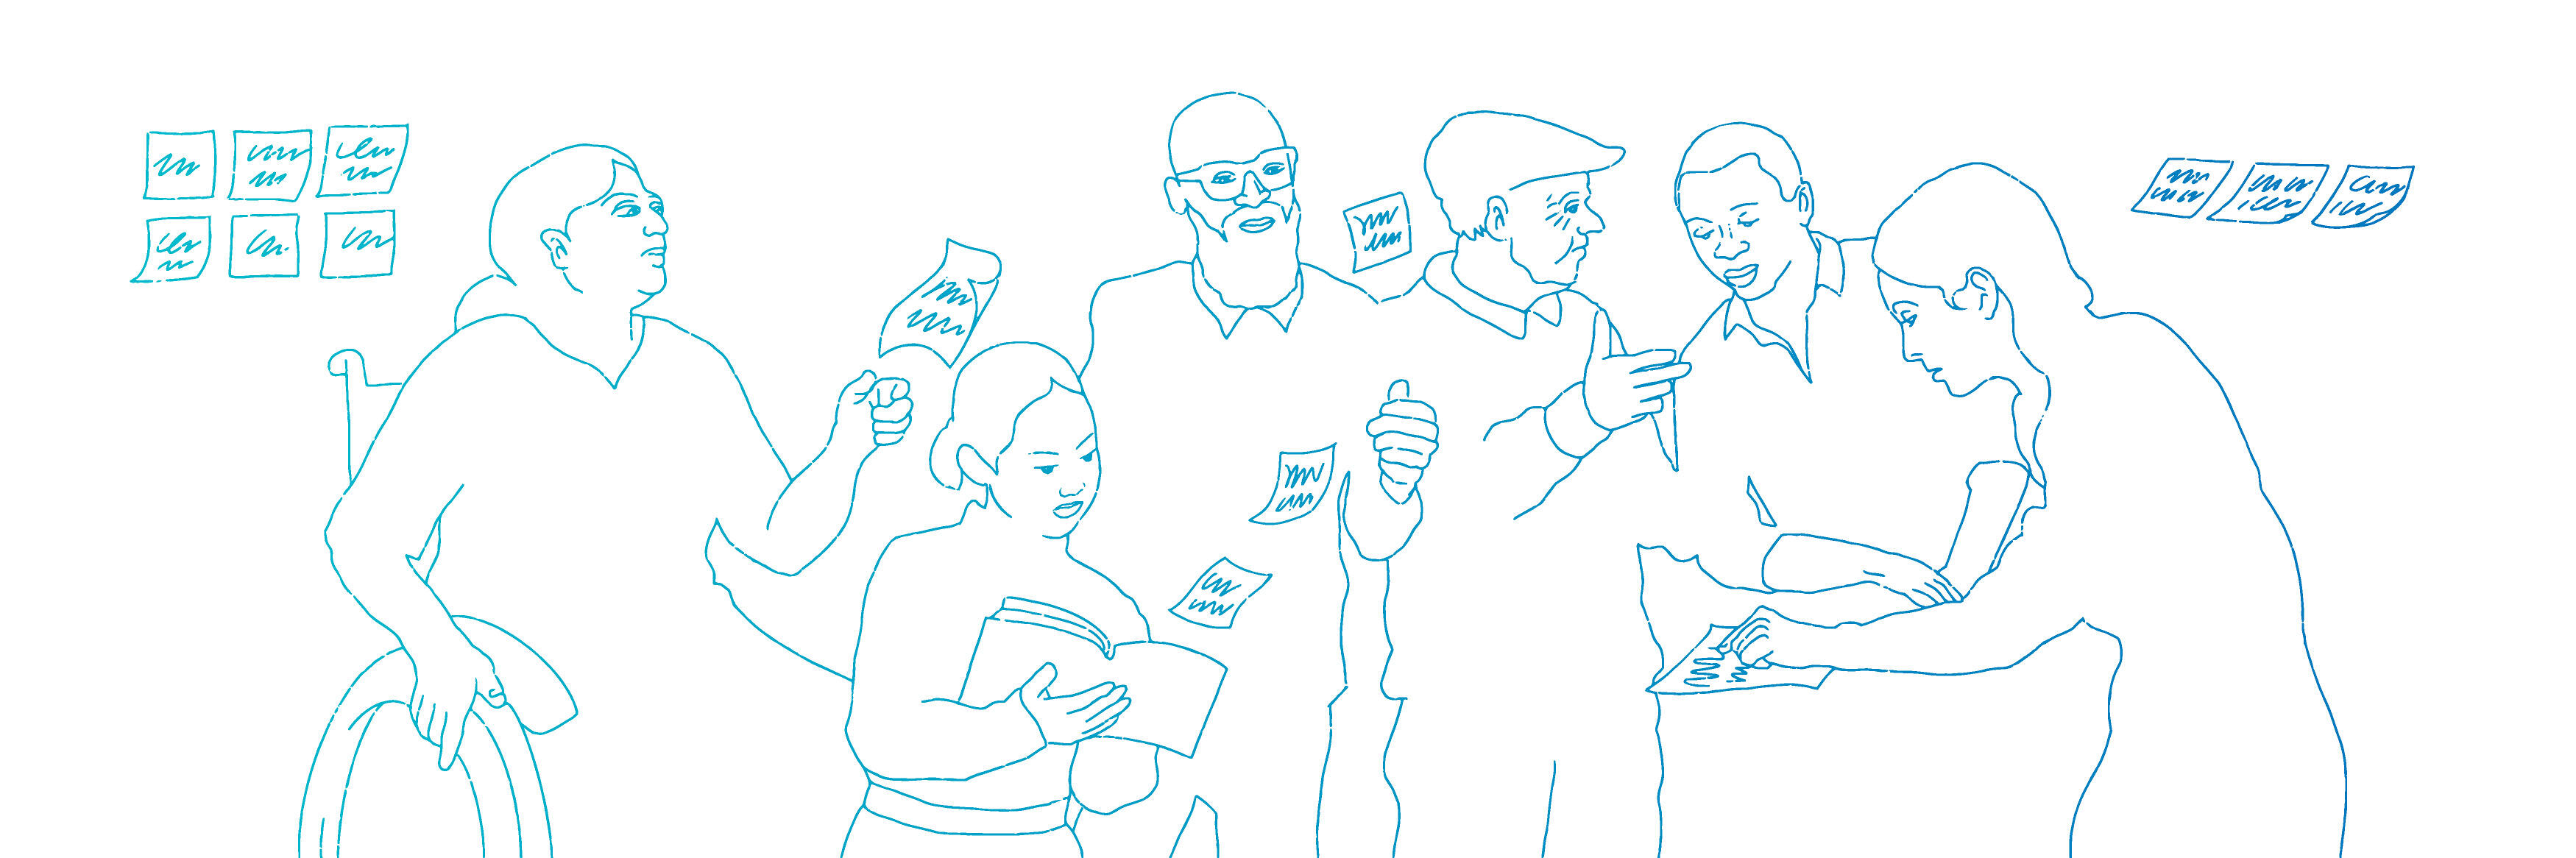 Illustration showing those who don't have access to digital systems trying to get healthcare services in person